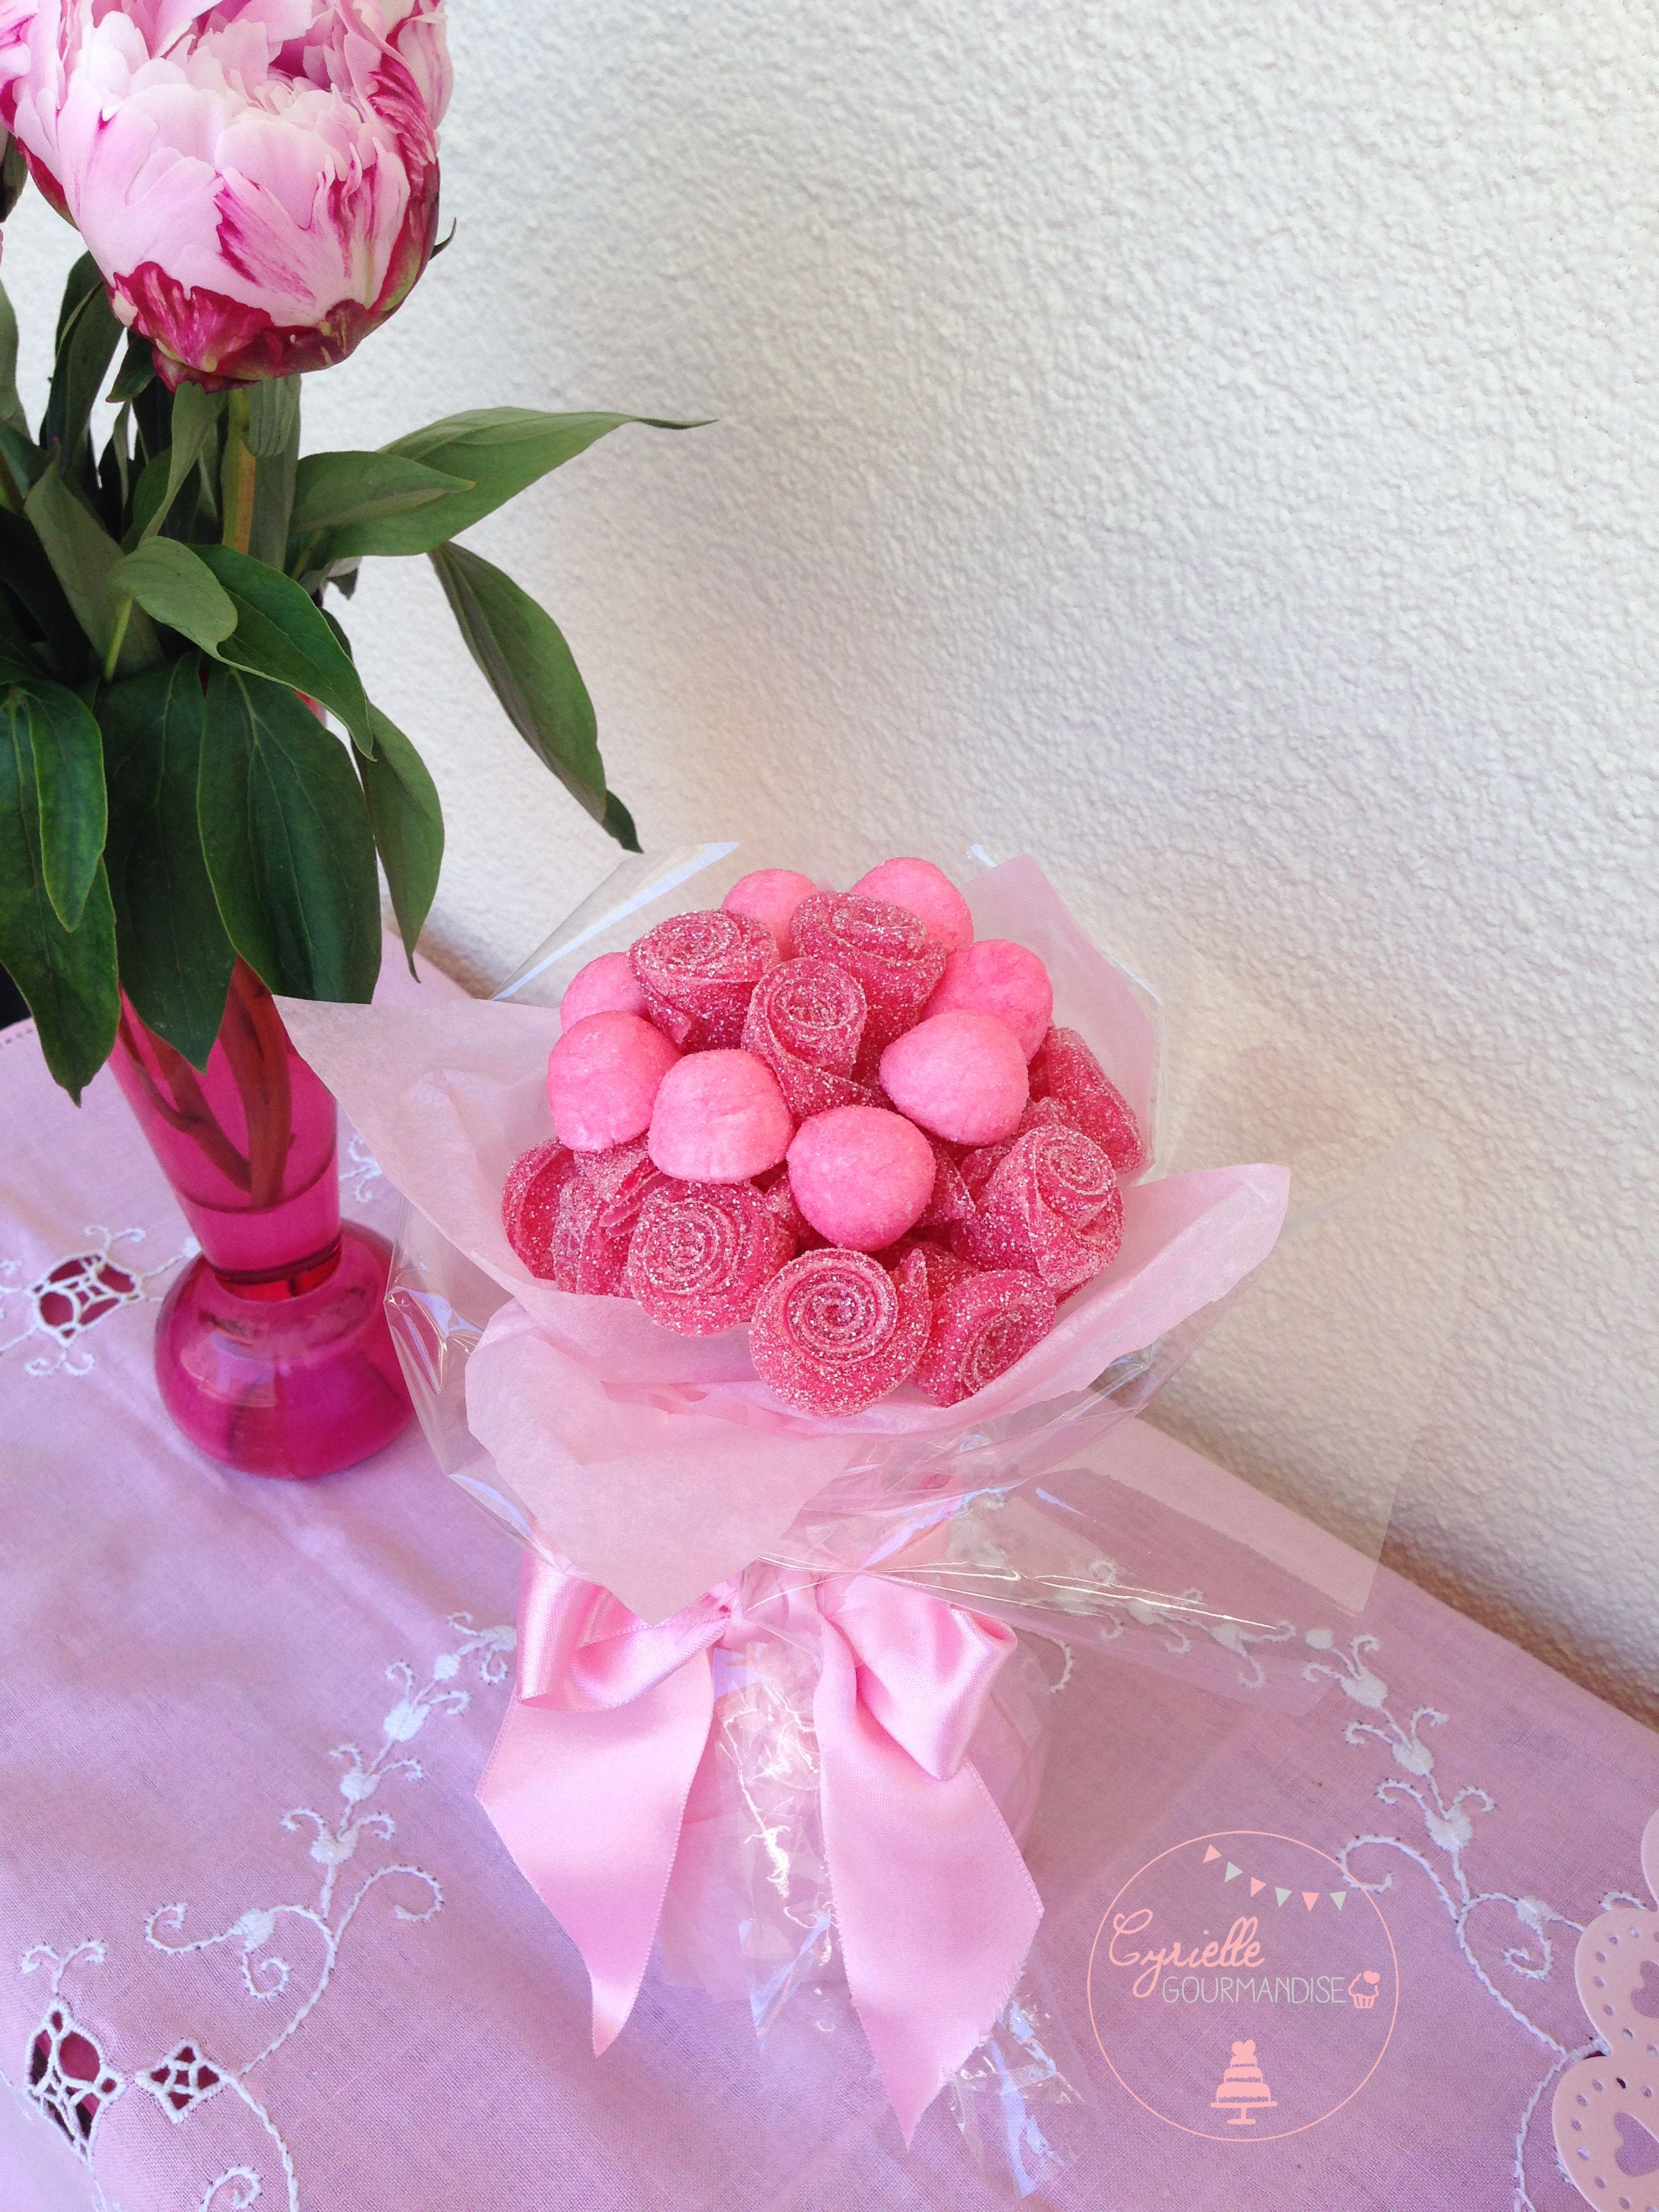 Bouquet Bonbons Bouquet Bonbon 2 Ideas Monik Candy Cake Et Gifts